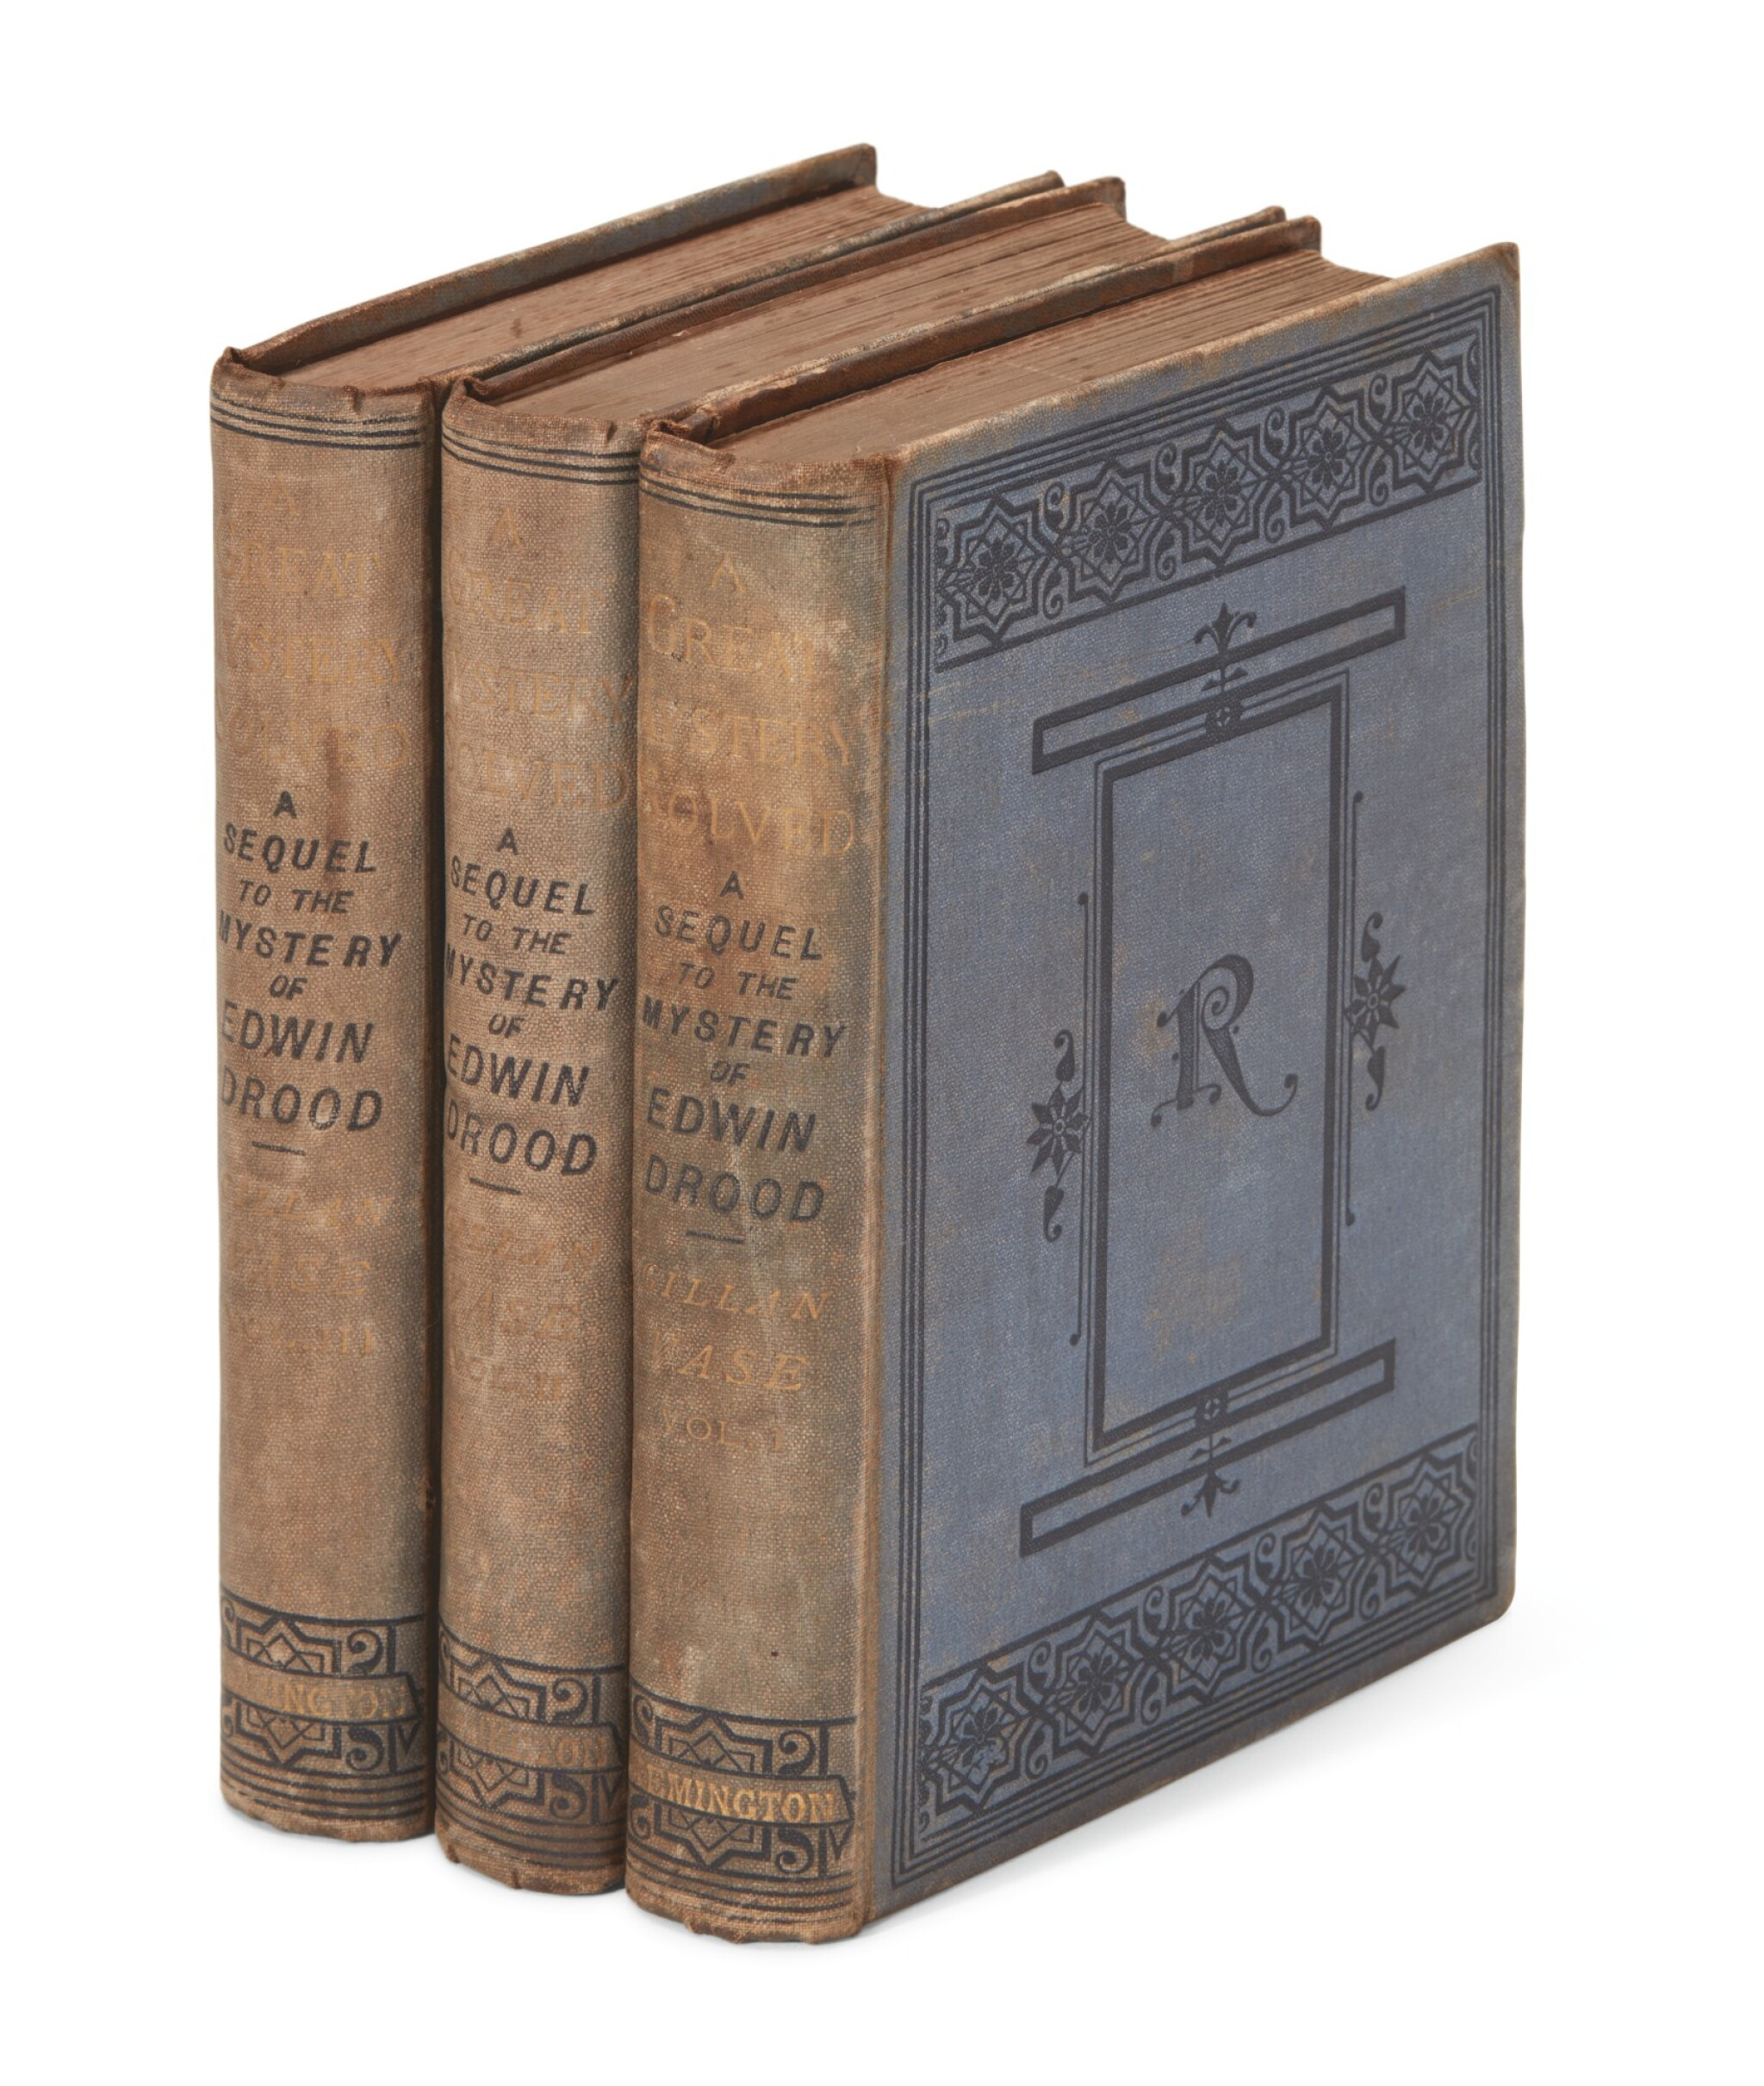 View full screen - View 1 of Lot 219. Vase, A Great Mystery Solved: Being A Sequel to the Mystery of Edwin Drood, 1878, first edition.